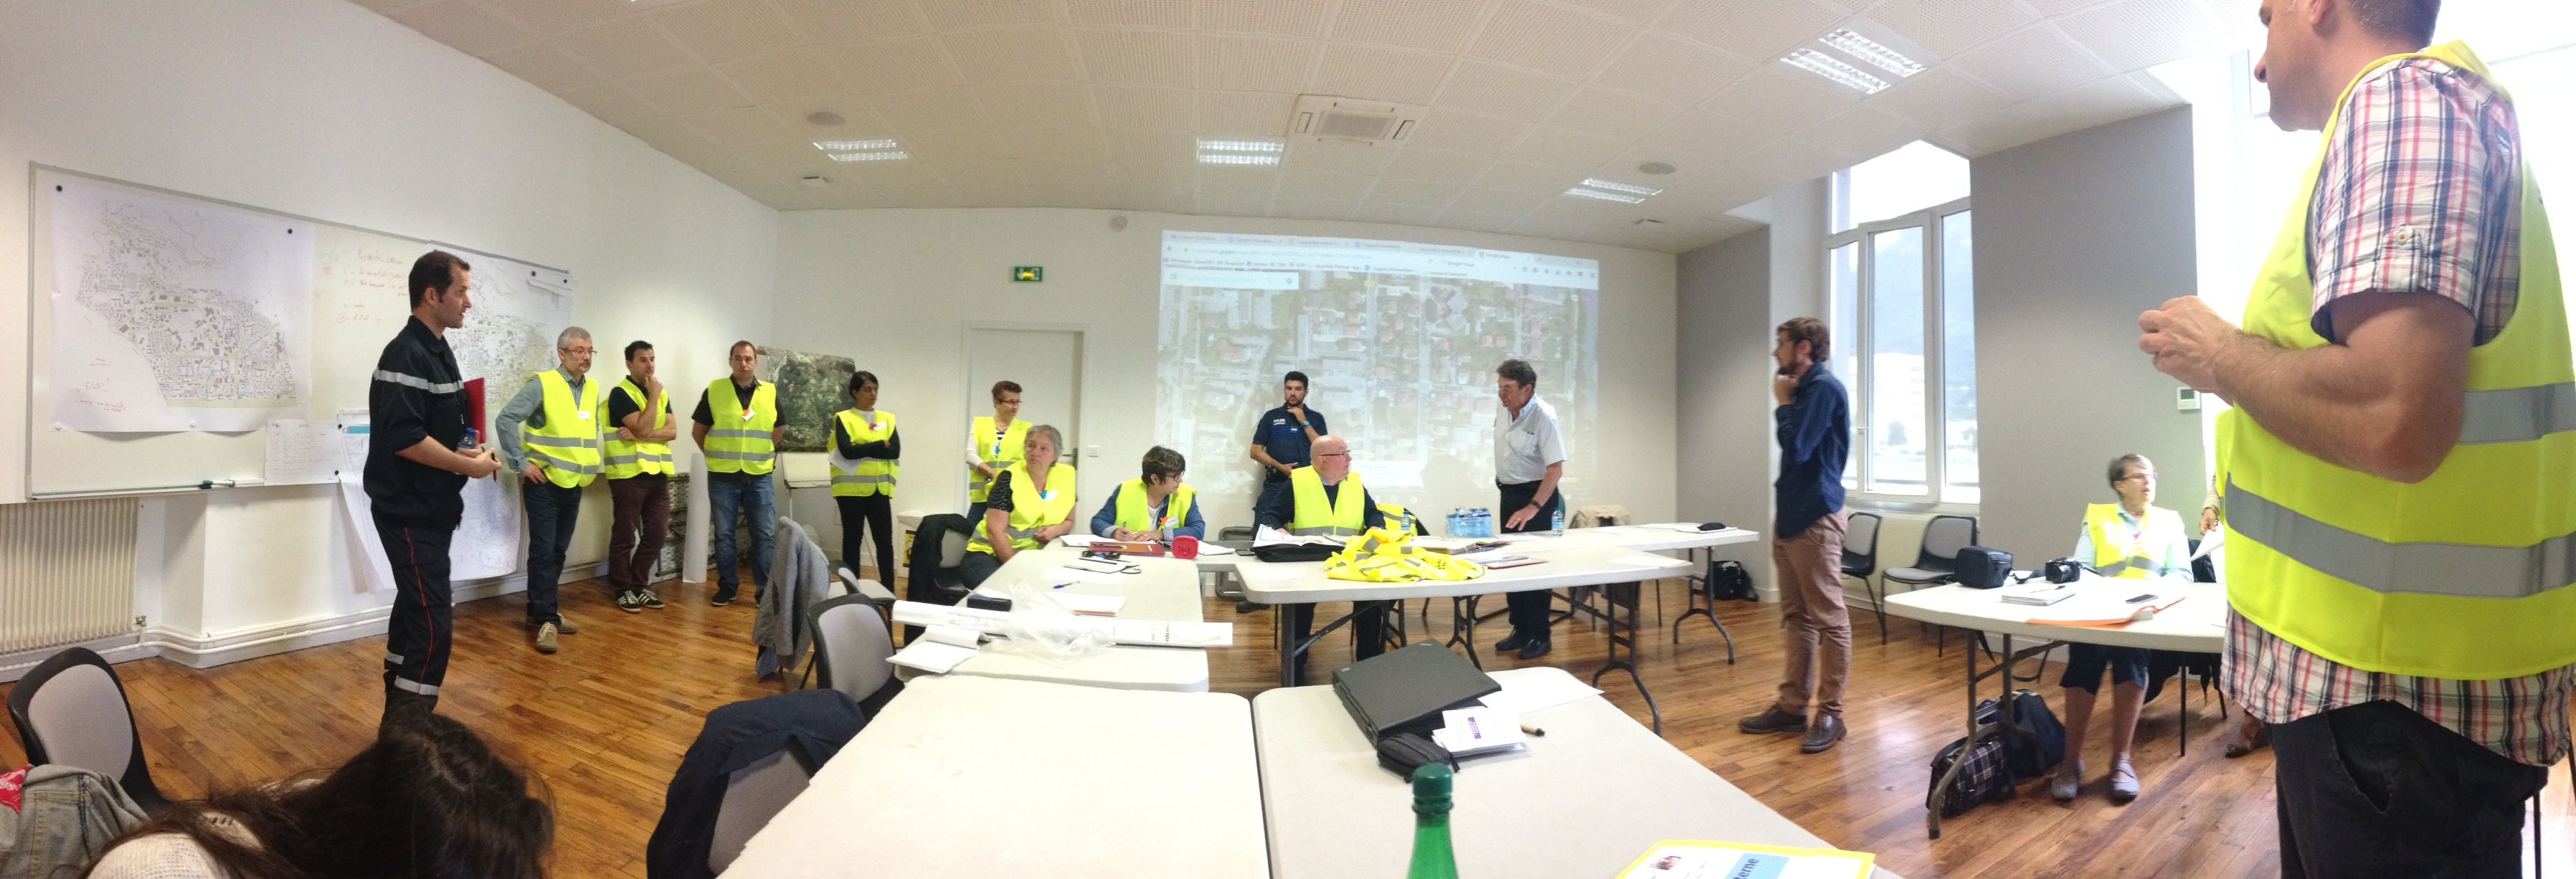 Exercice PCS Seyssinet